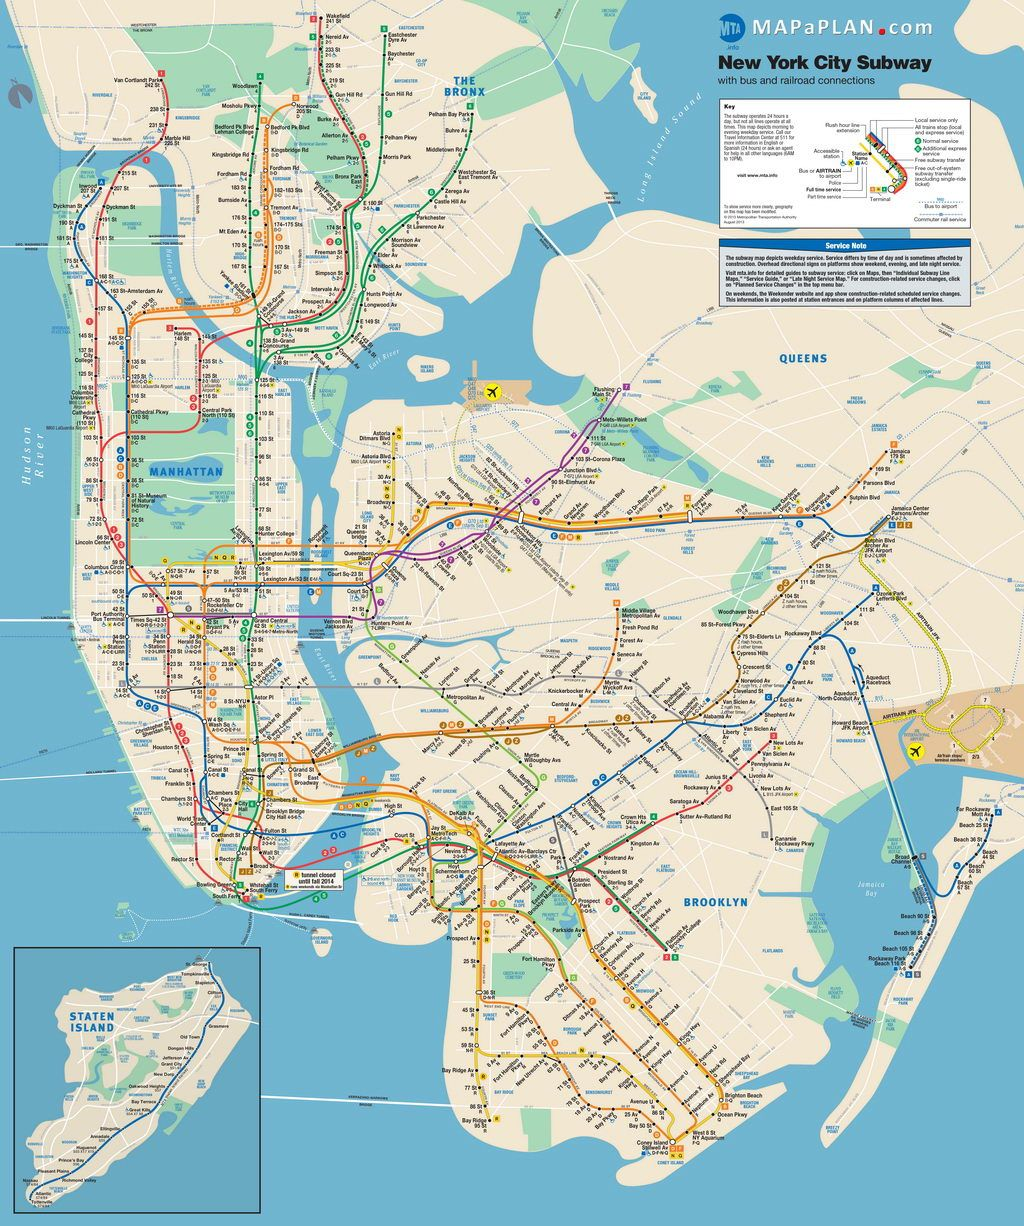 Free Map Of New York City.Lots Of Free Printable Maps Of Manhattan Great For Tourists If You